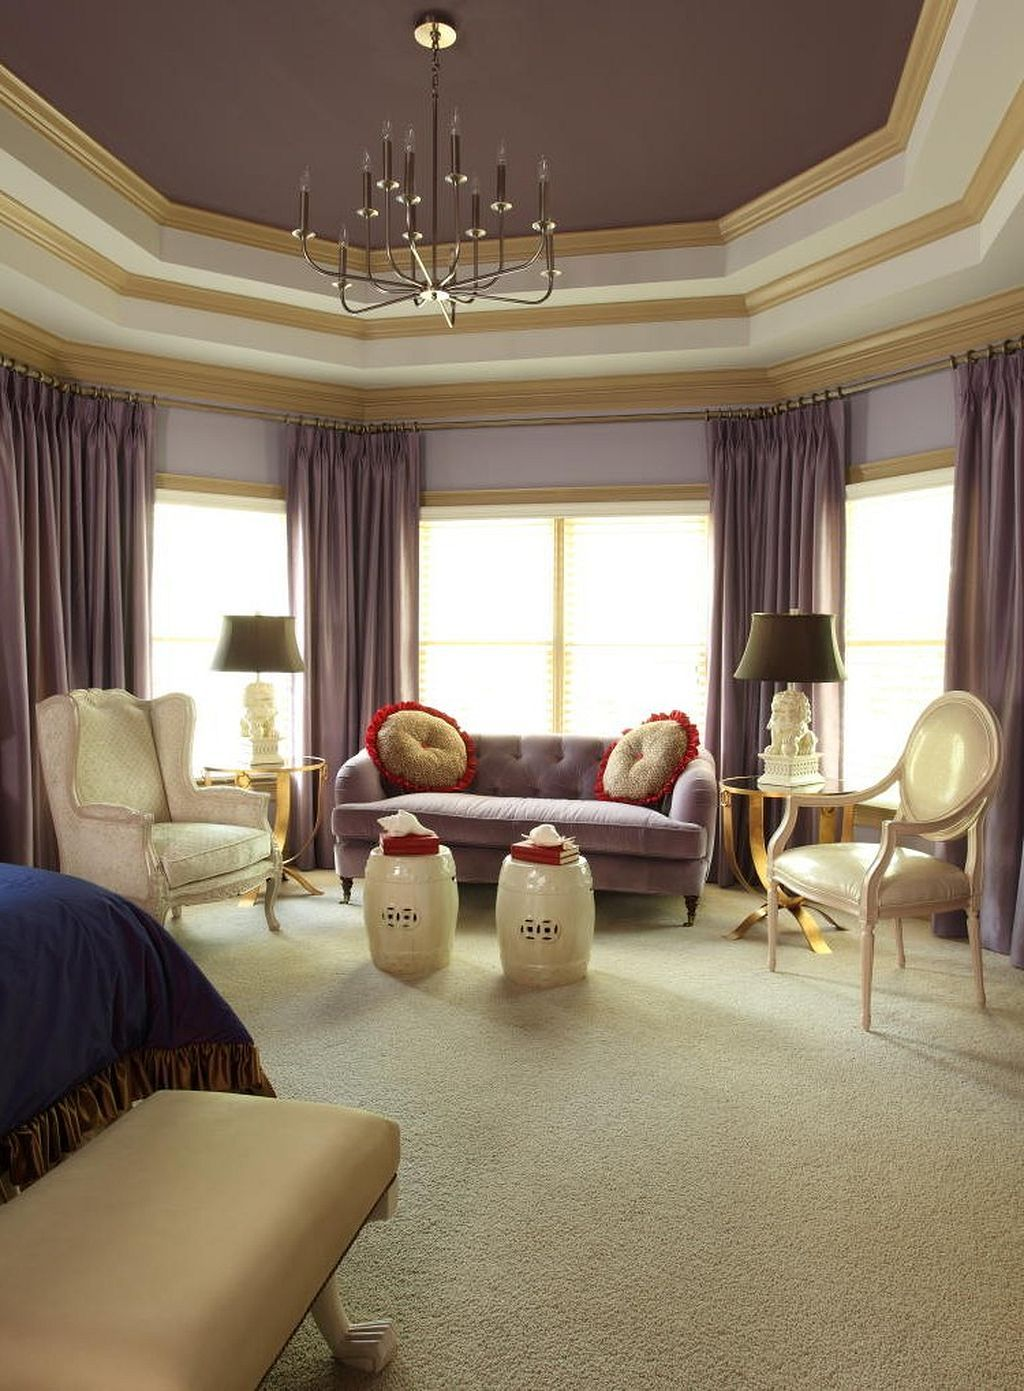 Master bedroom design   Awesome Romantic Master Bedroom Design Ideas You Have To Try